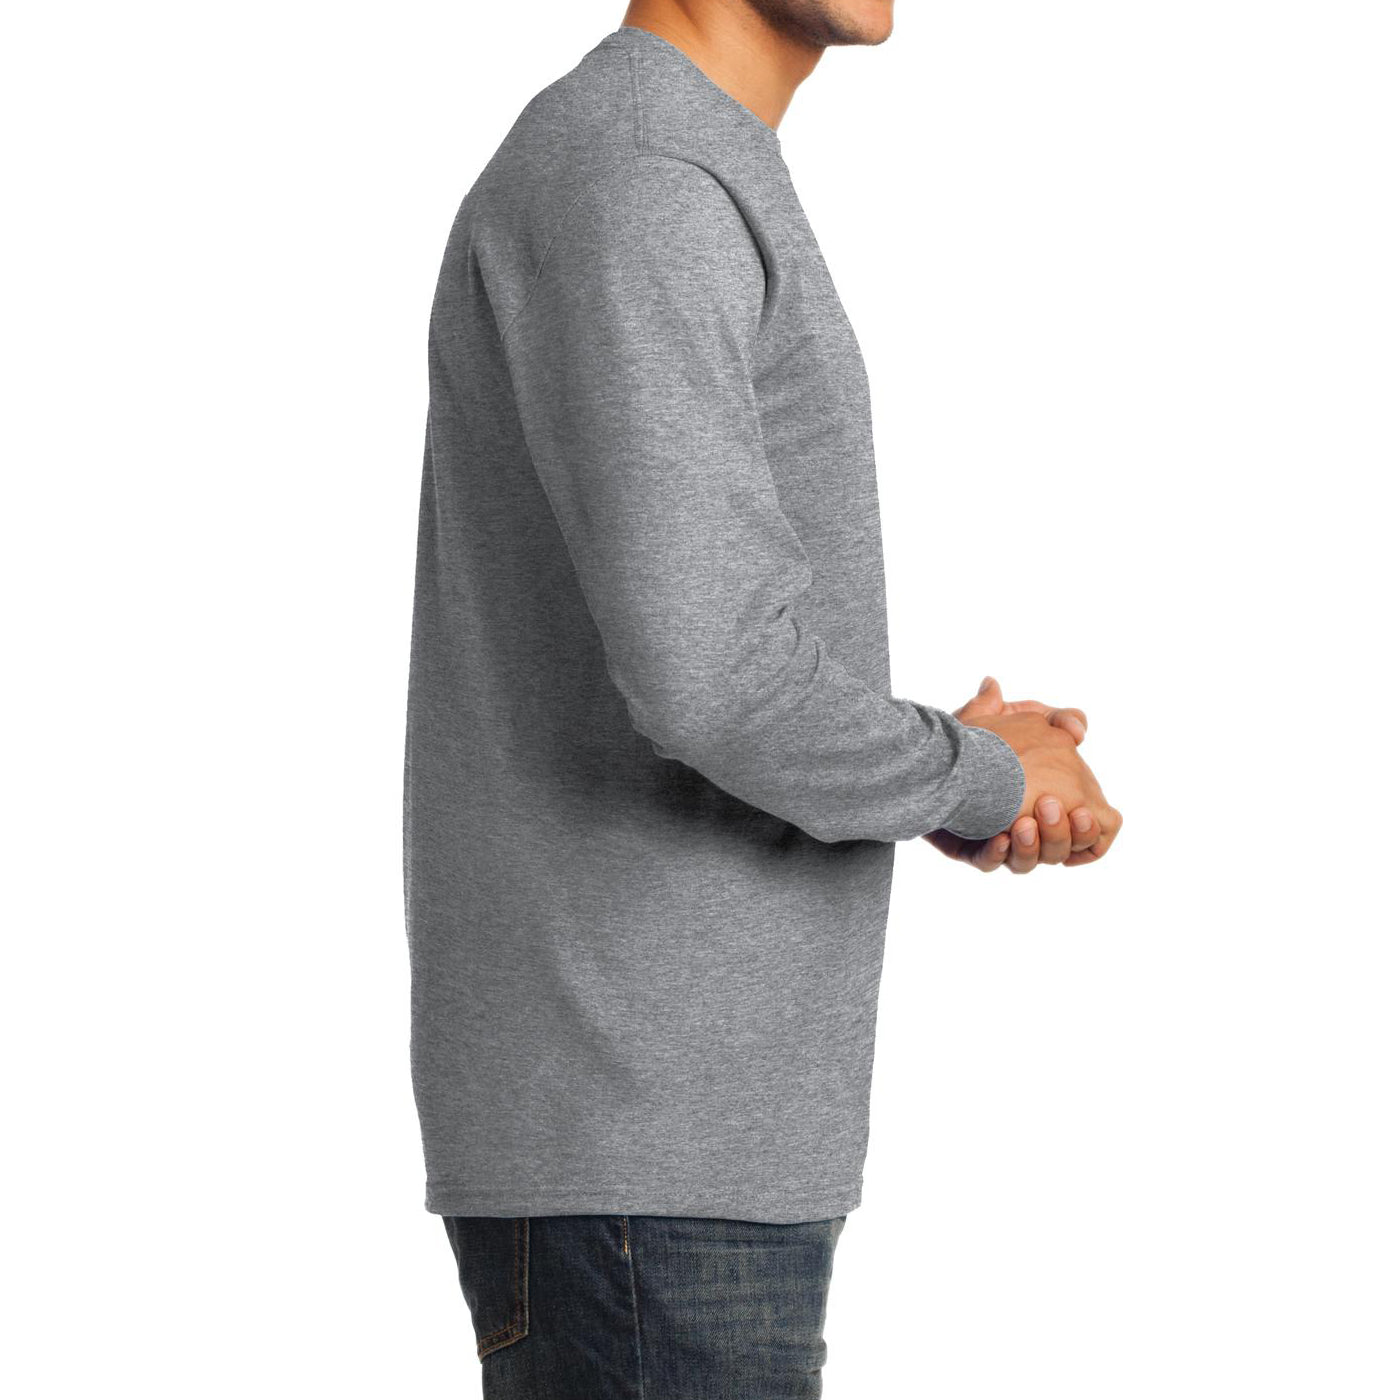 Men's Long Sleeve Essential Tee - Athletic Heather - Side